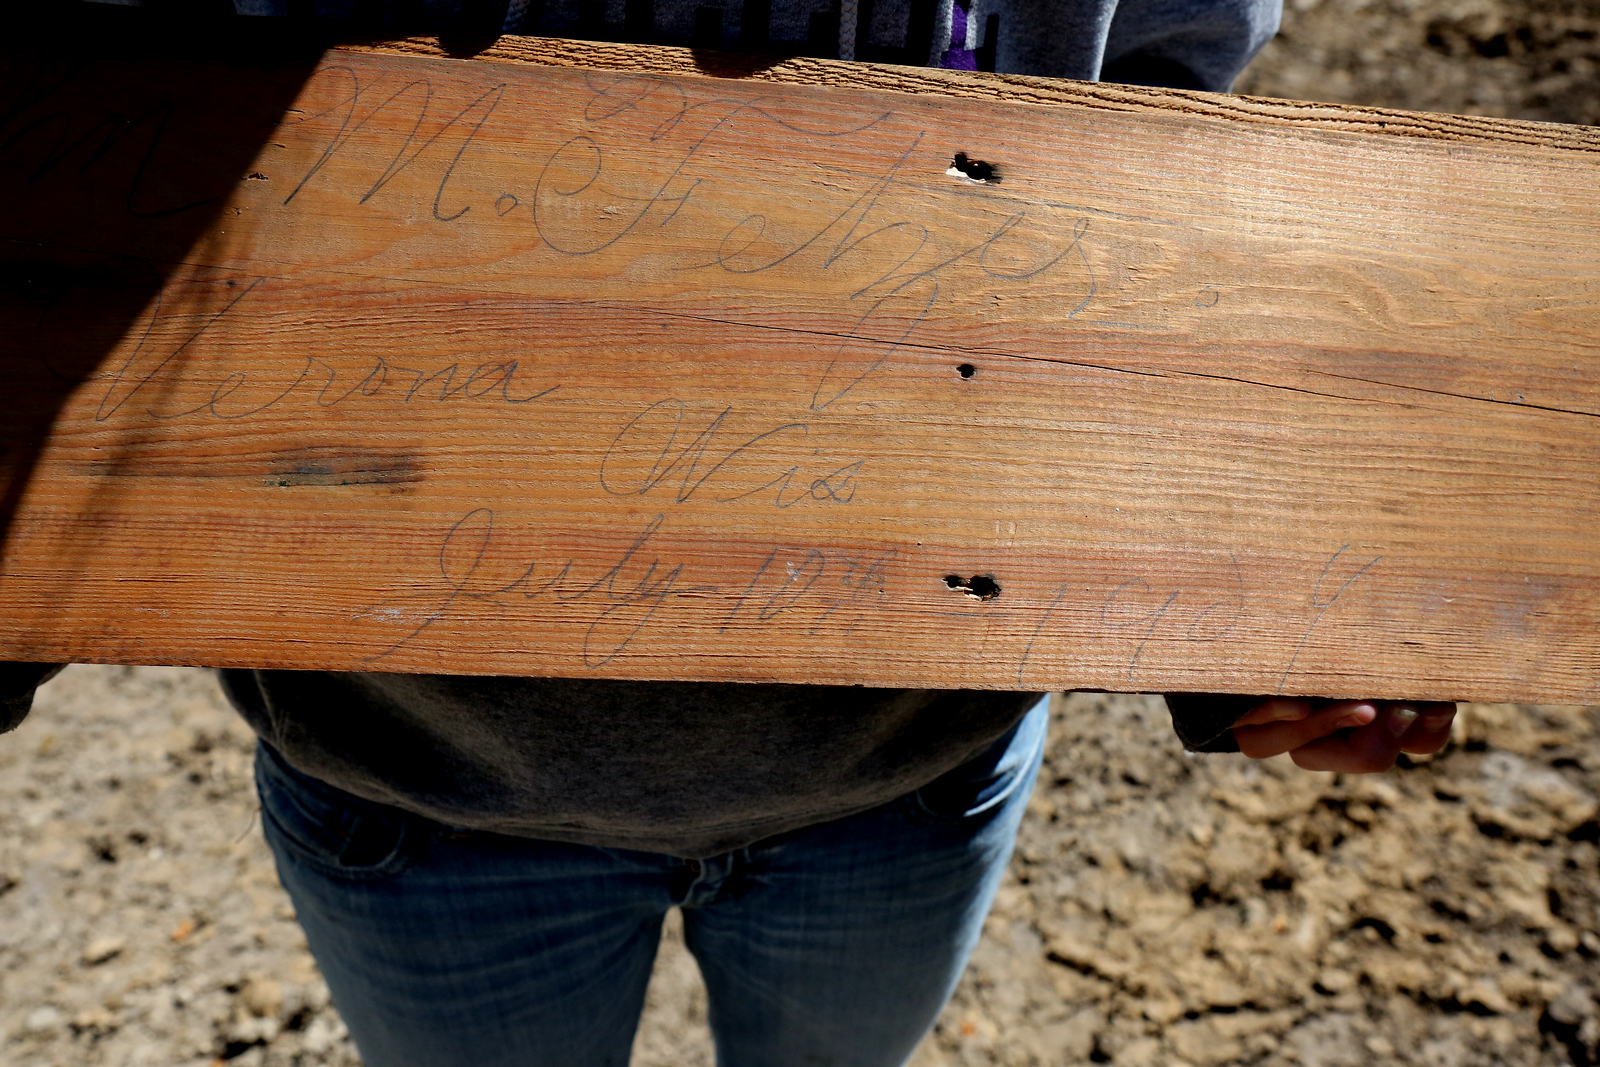 Time Capsule: Signed Builder's Board found during tear down of the 1904 abode